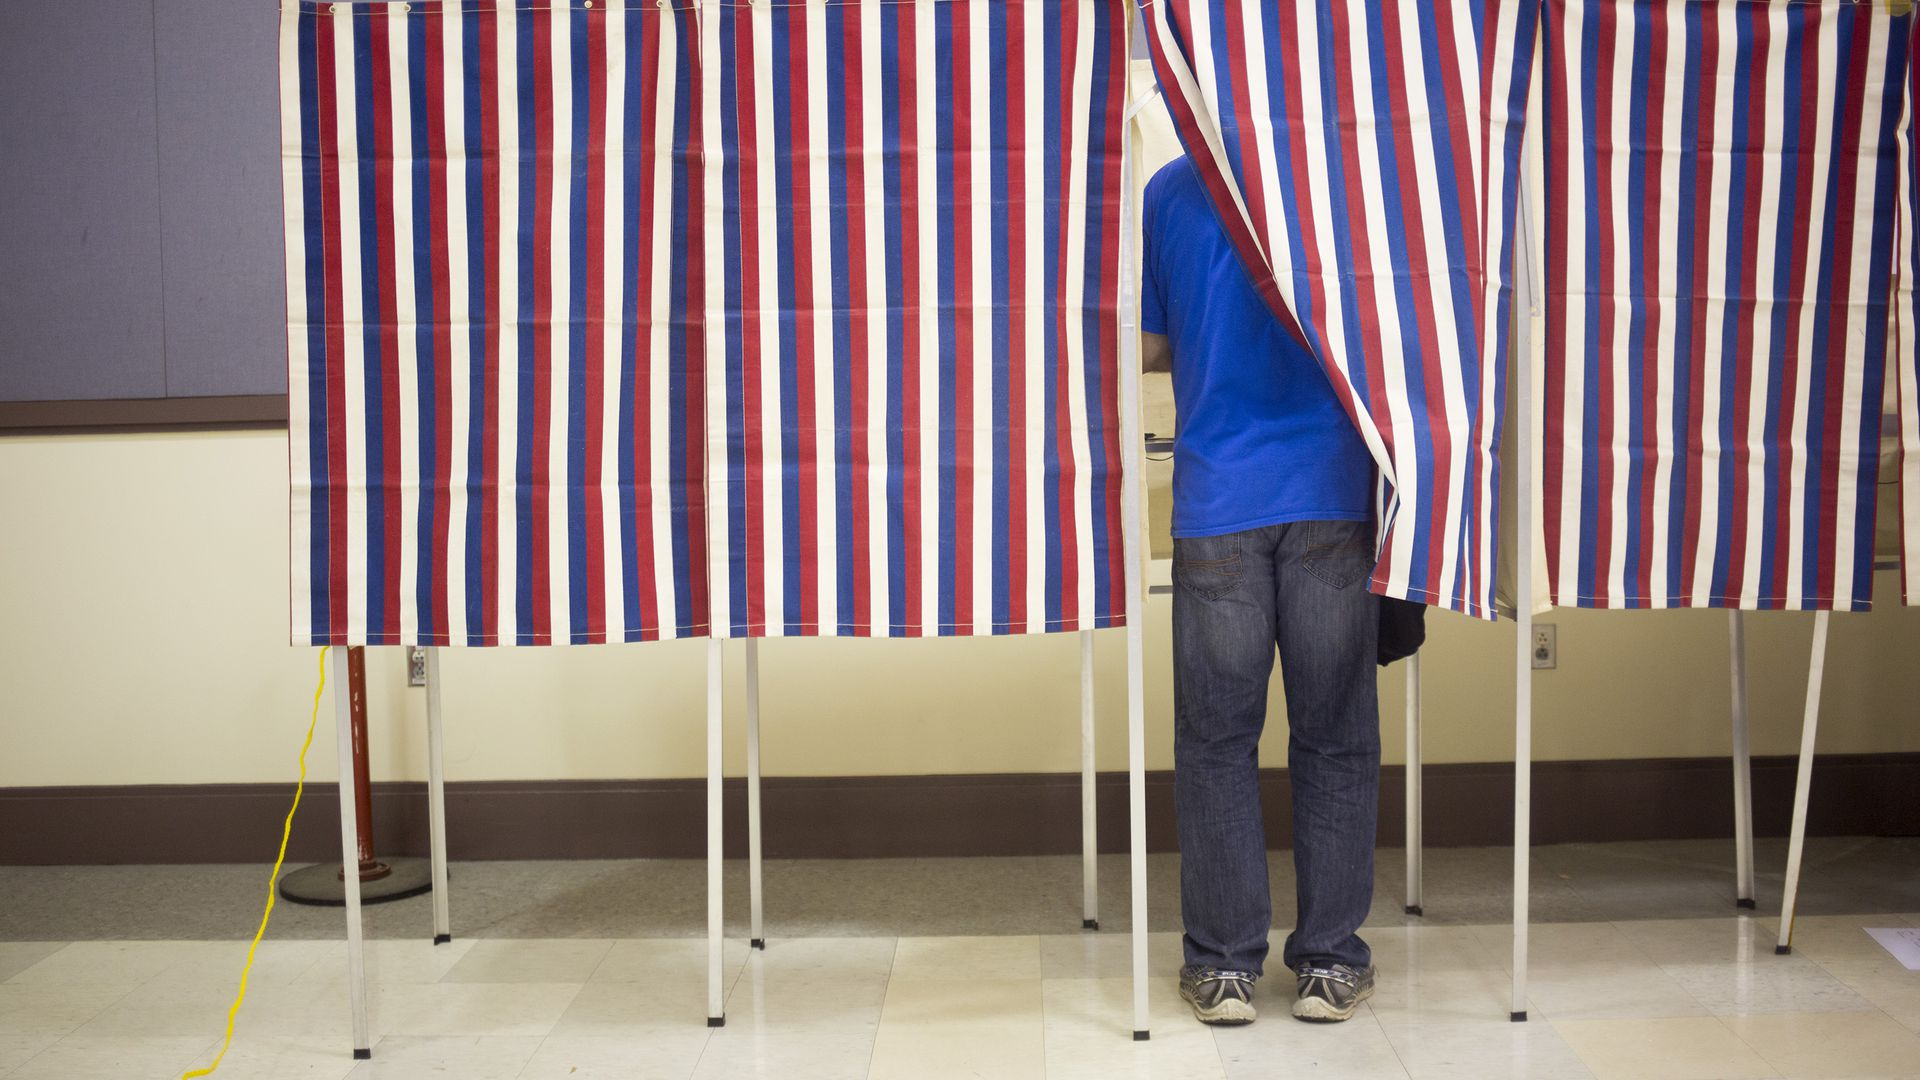 Red, white, and blue striped panels cover a voter voting in a polling booth.